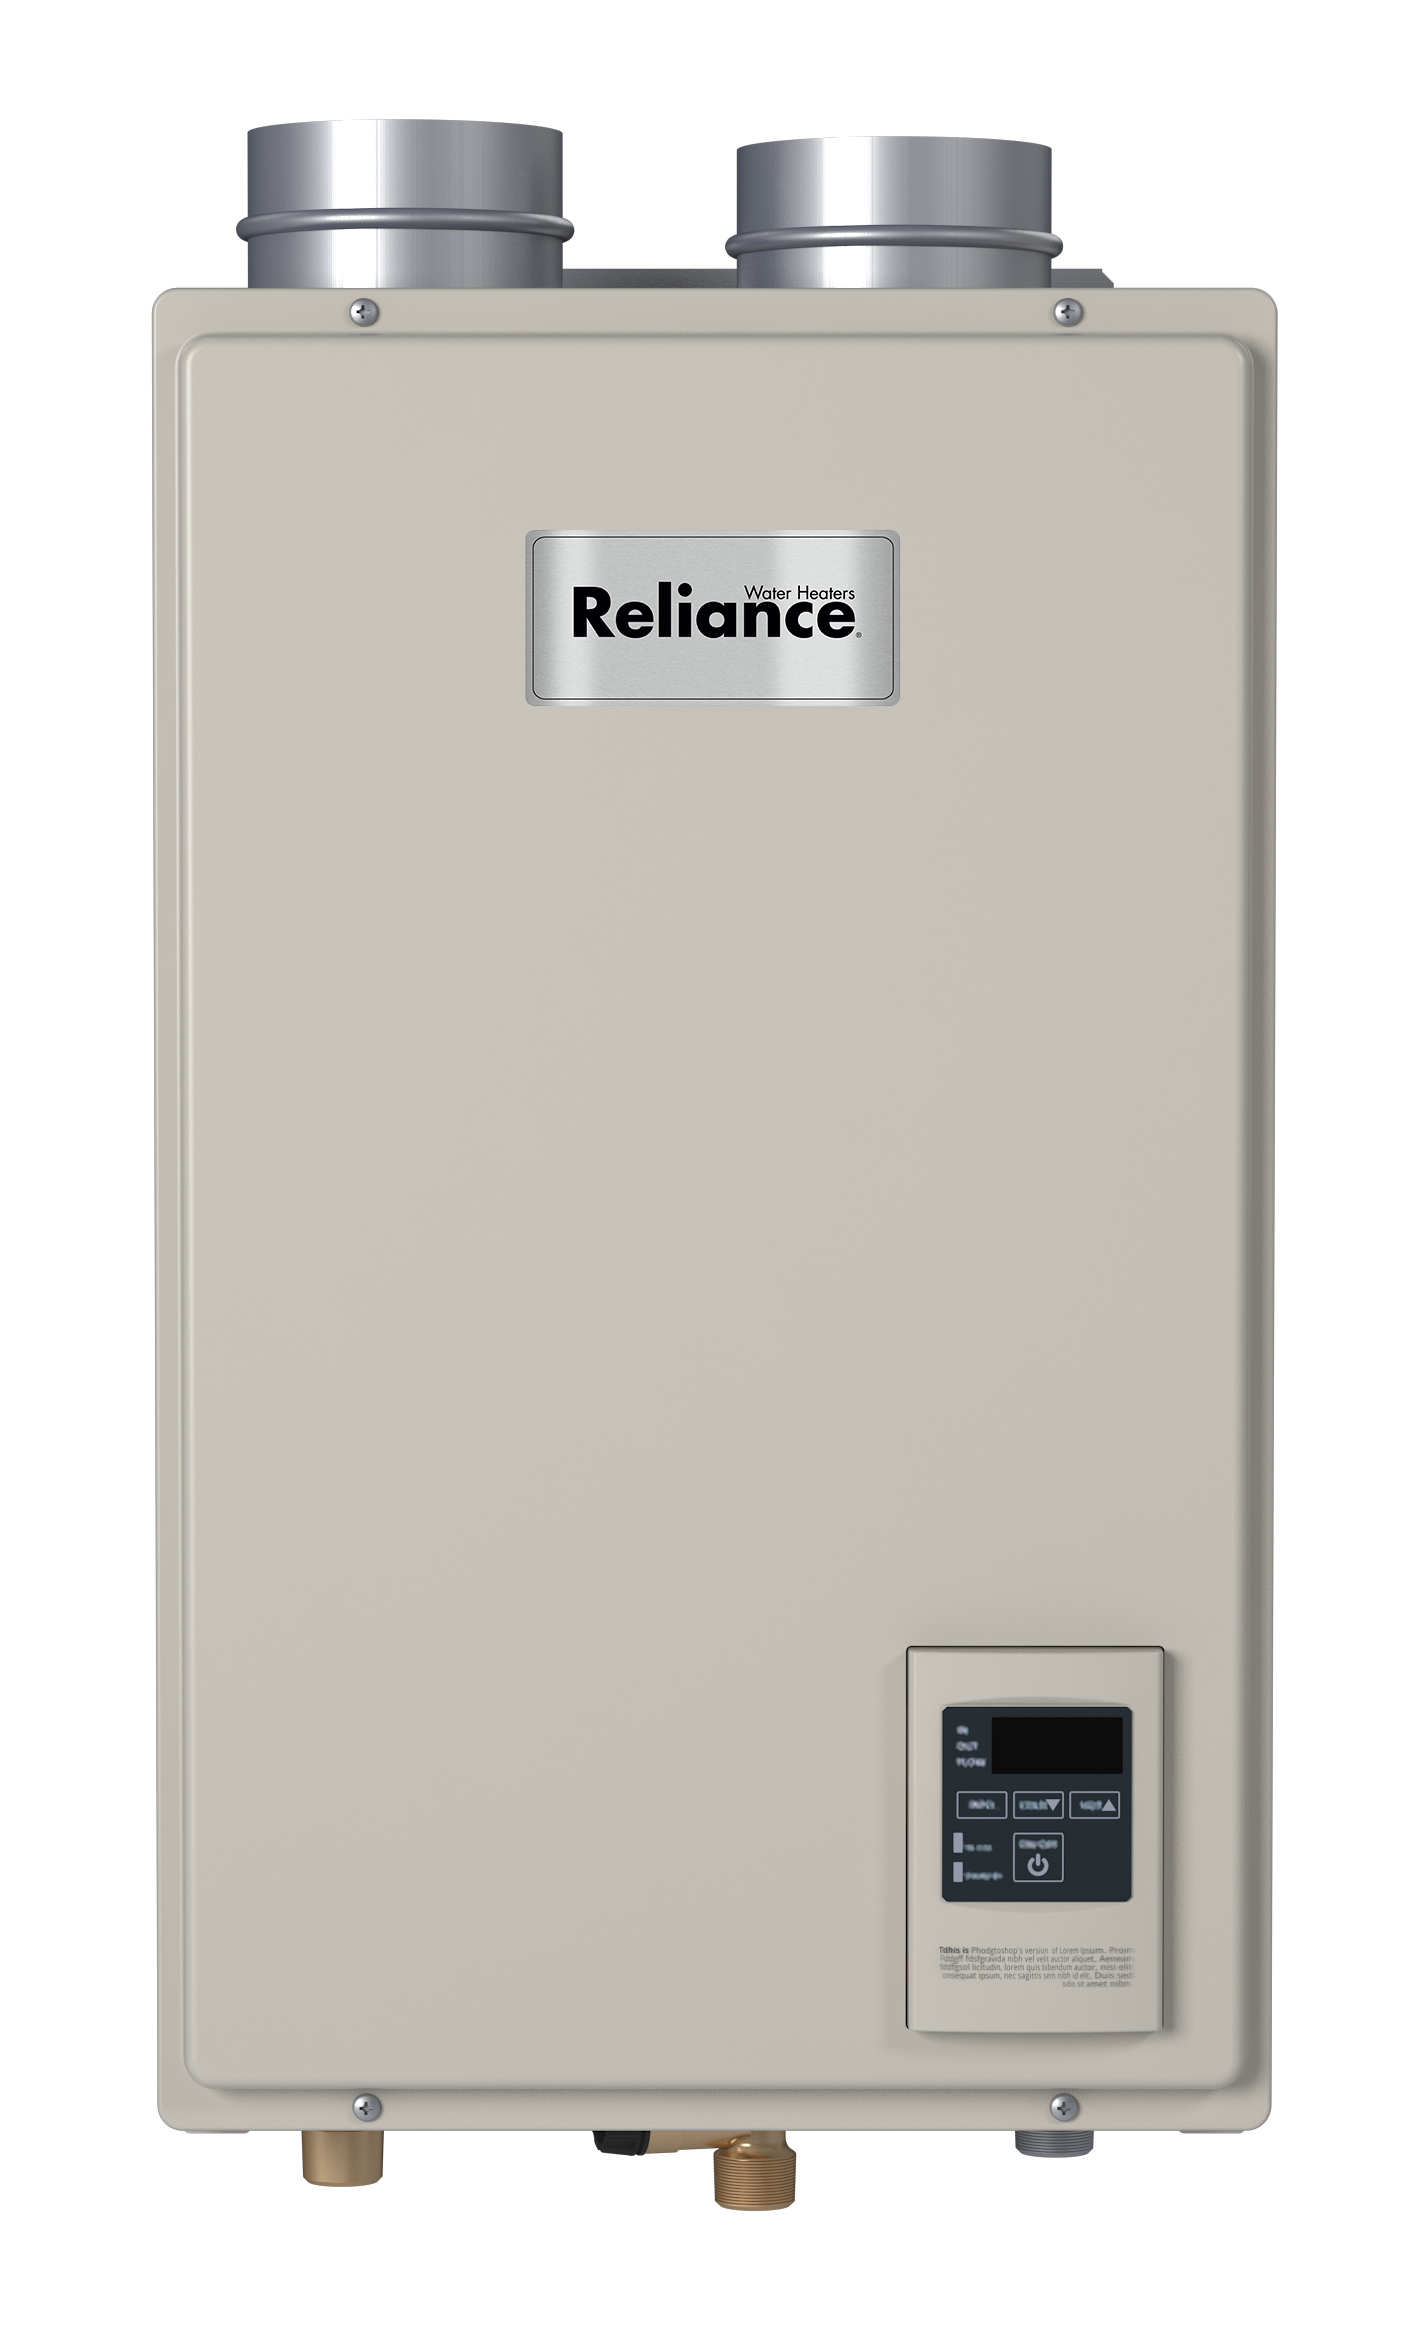 Natural Gas Power Vent Water Heater Products Media Bank Reliance Water Heater Reliance Water